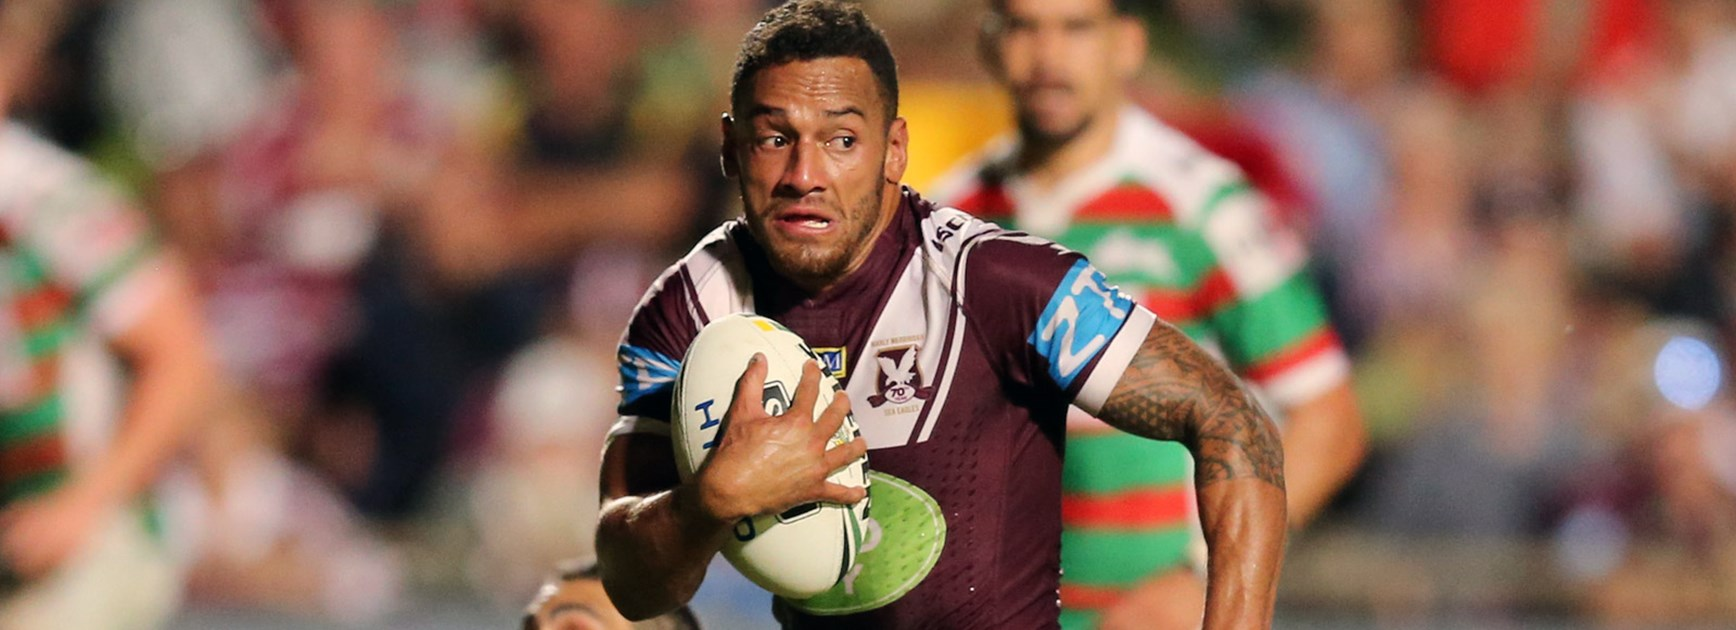 Sea Eagles halfback Apisai Koroisau scored a try against Souths in Round 5.